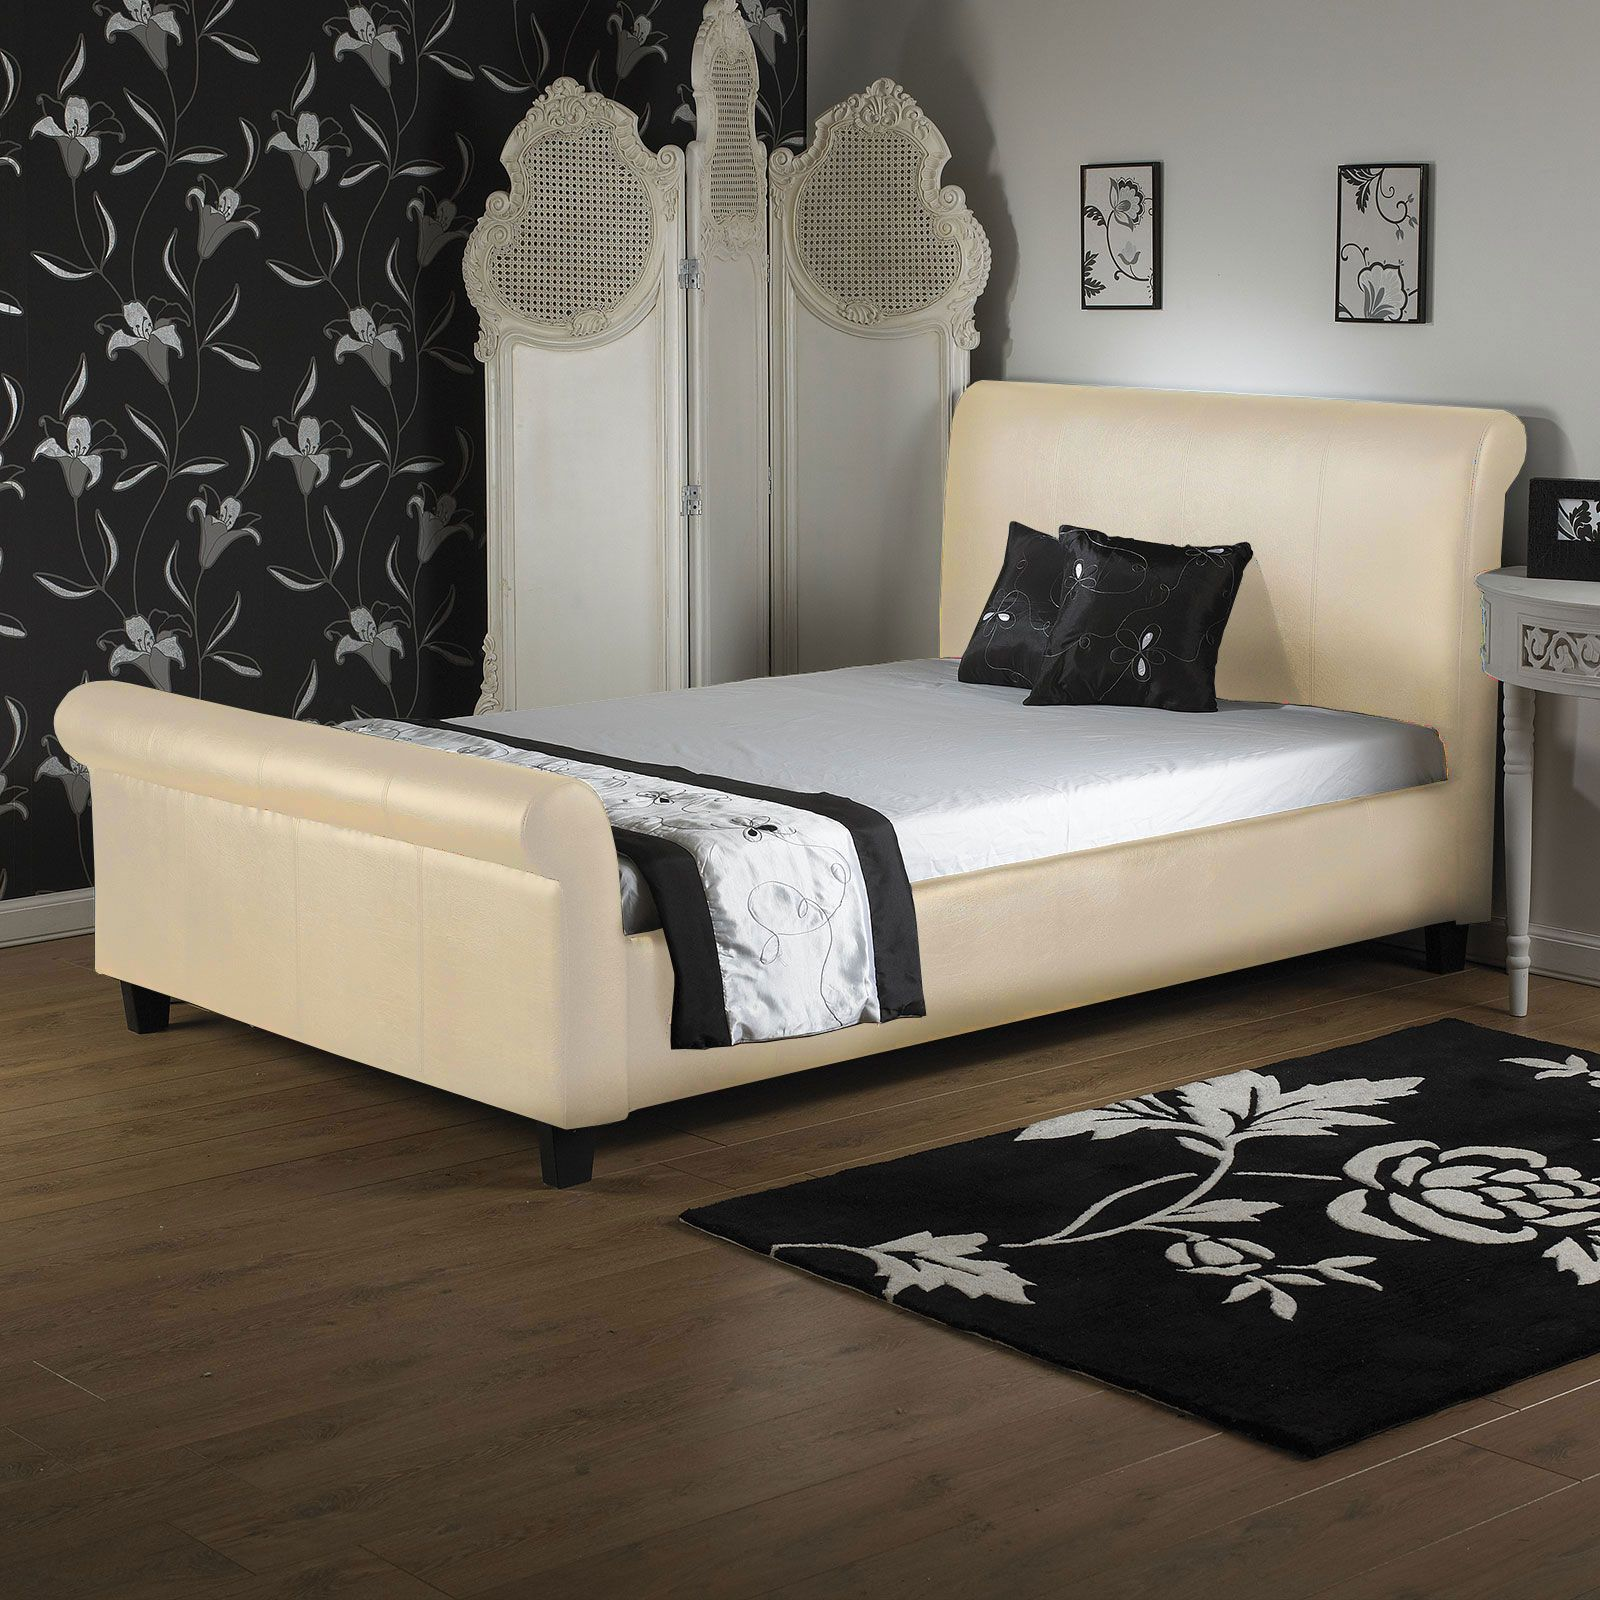 Black Faux Leather Sleigh Bed with Rolled Headboard and